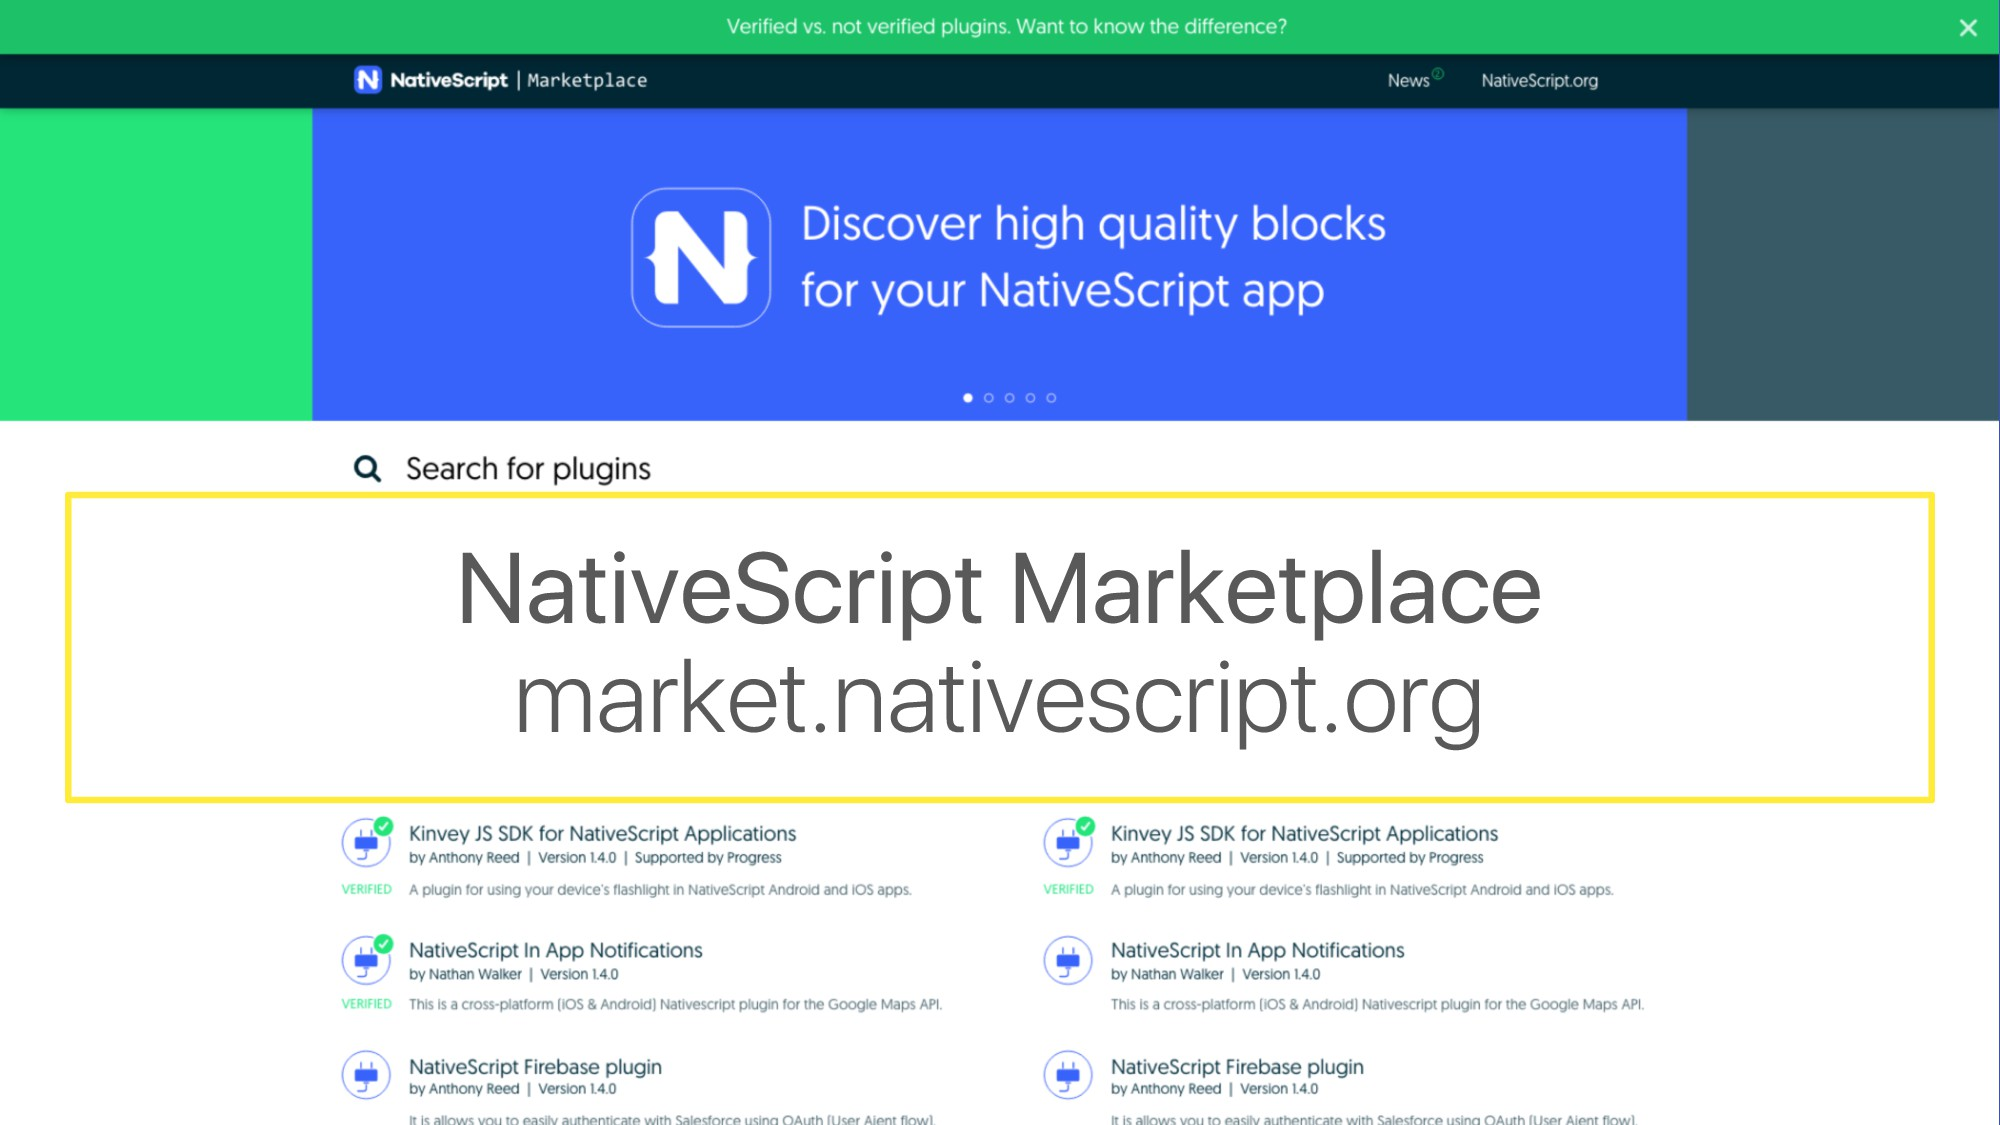 NativeScript Marketplace market.nativescript.org